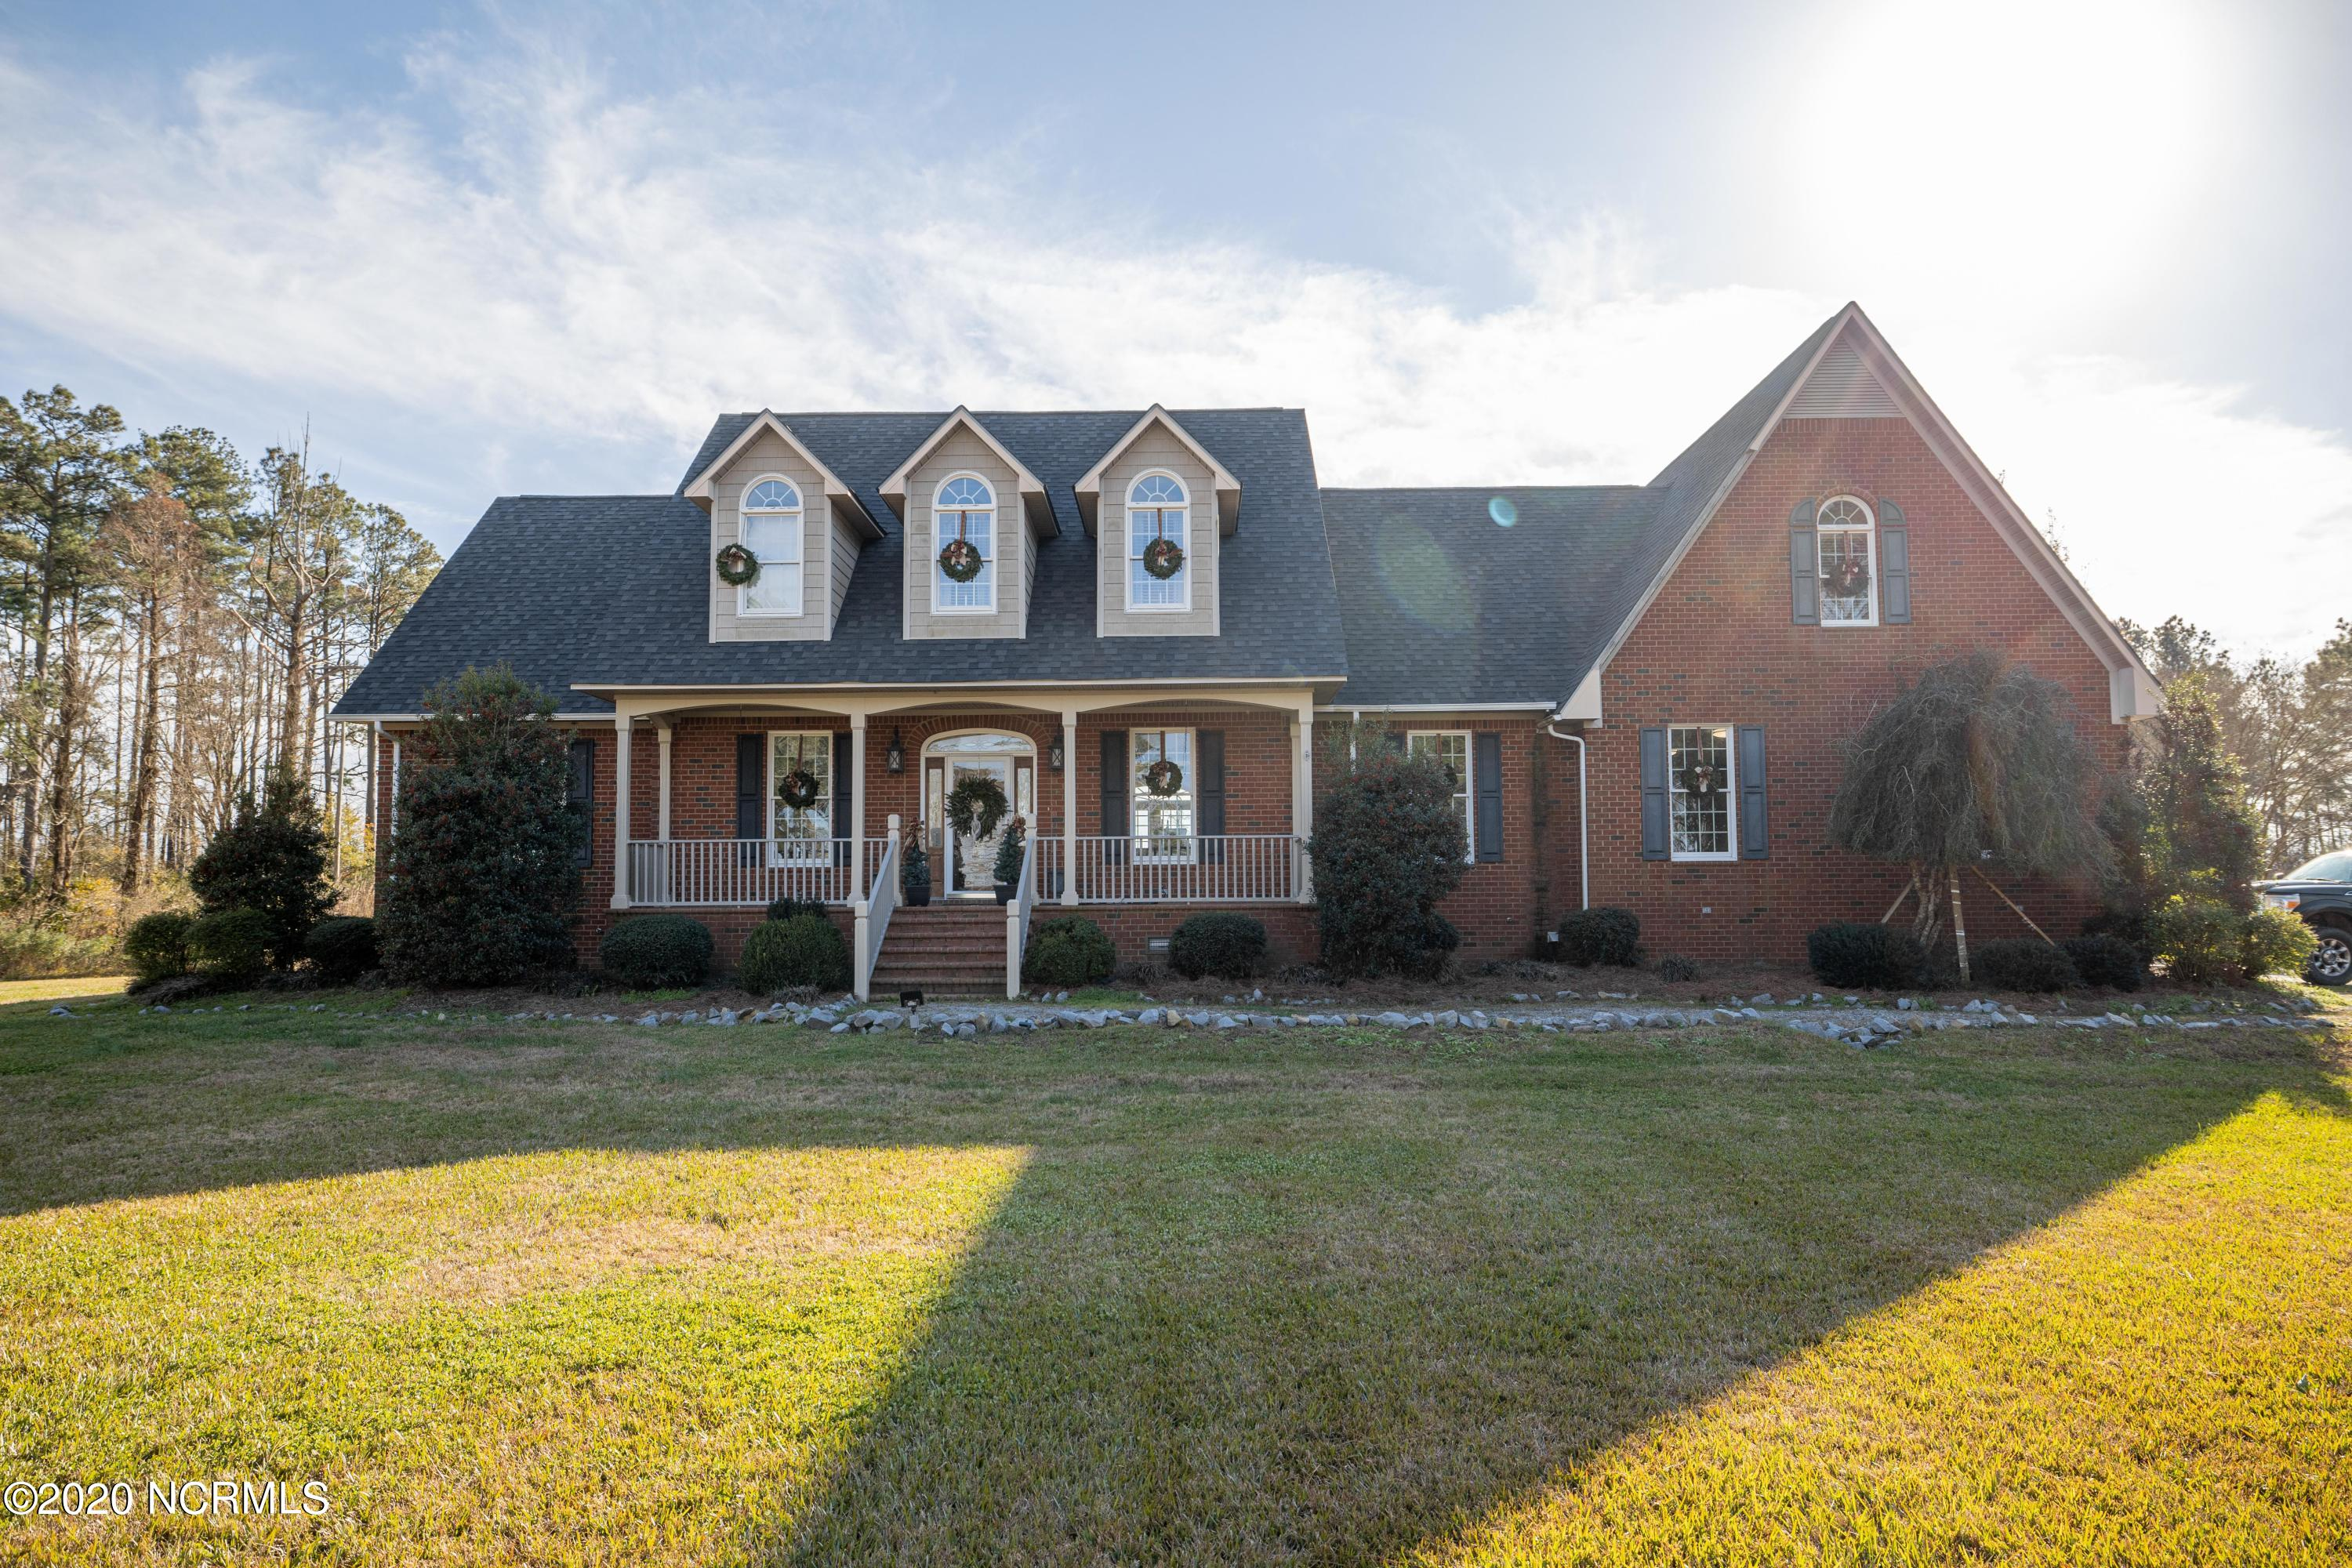 8938 Nc 45, Belhaven, North Carolina 27810, 3 Bedrooms Bedrooms, 9 Rooms Rooms,3 BathroomsBathrooms,Single family residence,For sale,Nc 45,100249266